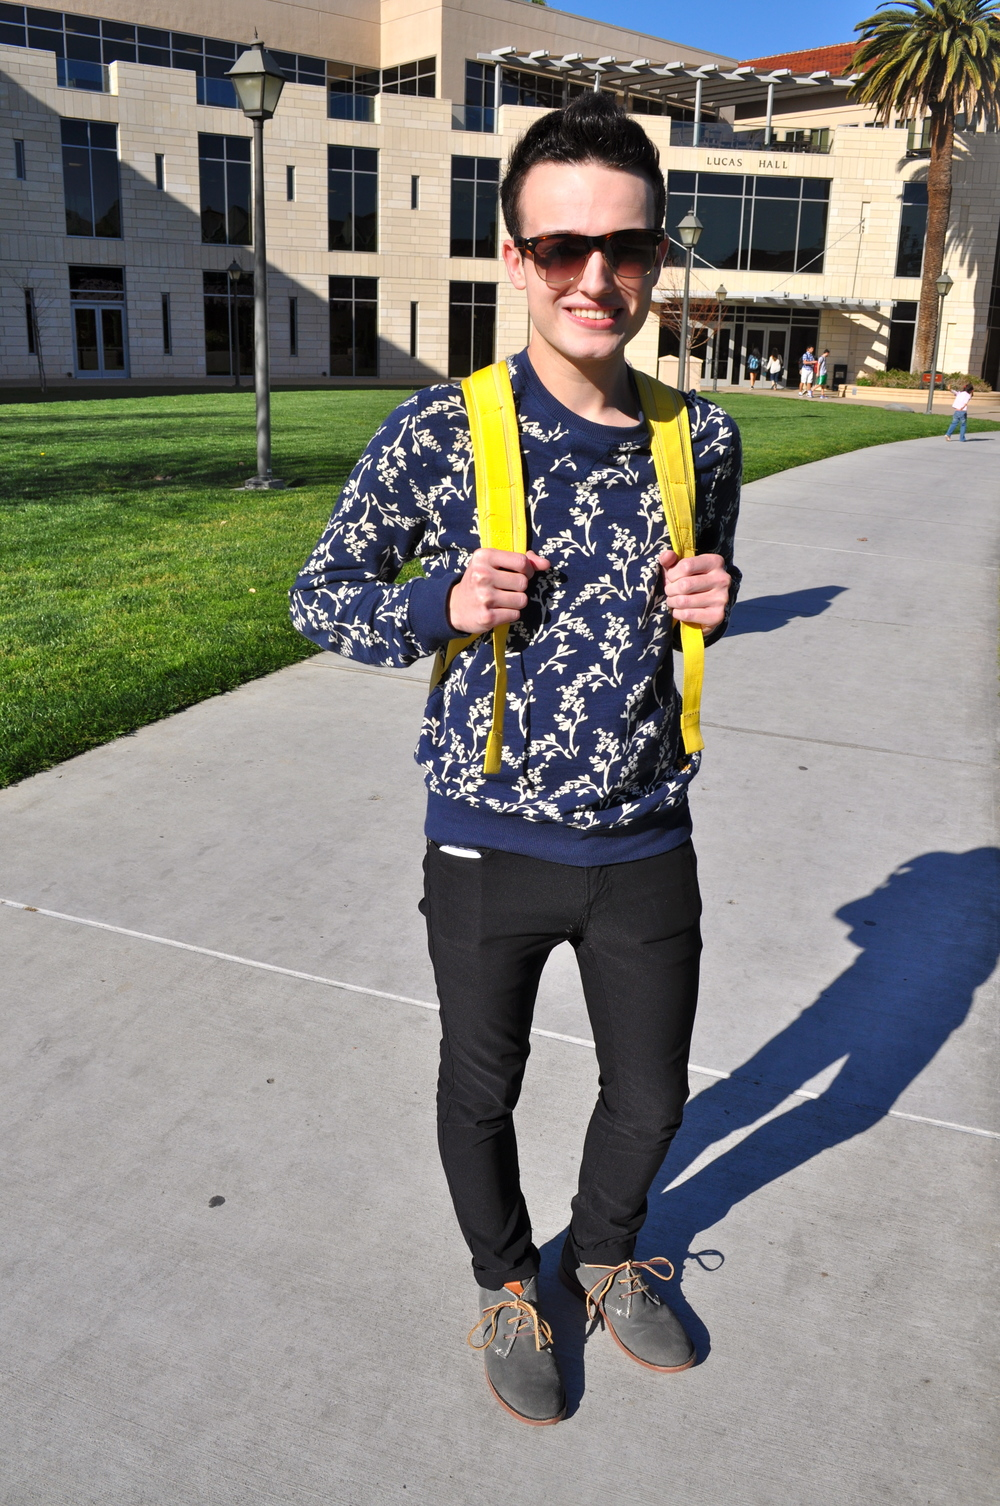 Alex | SCU Floral Print Blue Sweater  Skinny Black Jeans Grey Suede Oxfords Neon Yellow Backpack Rayban Sunglasses